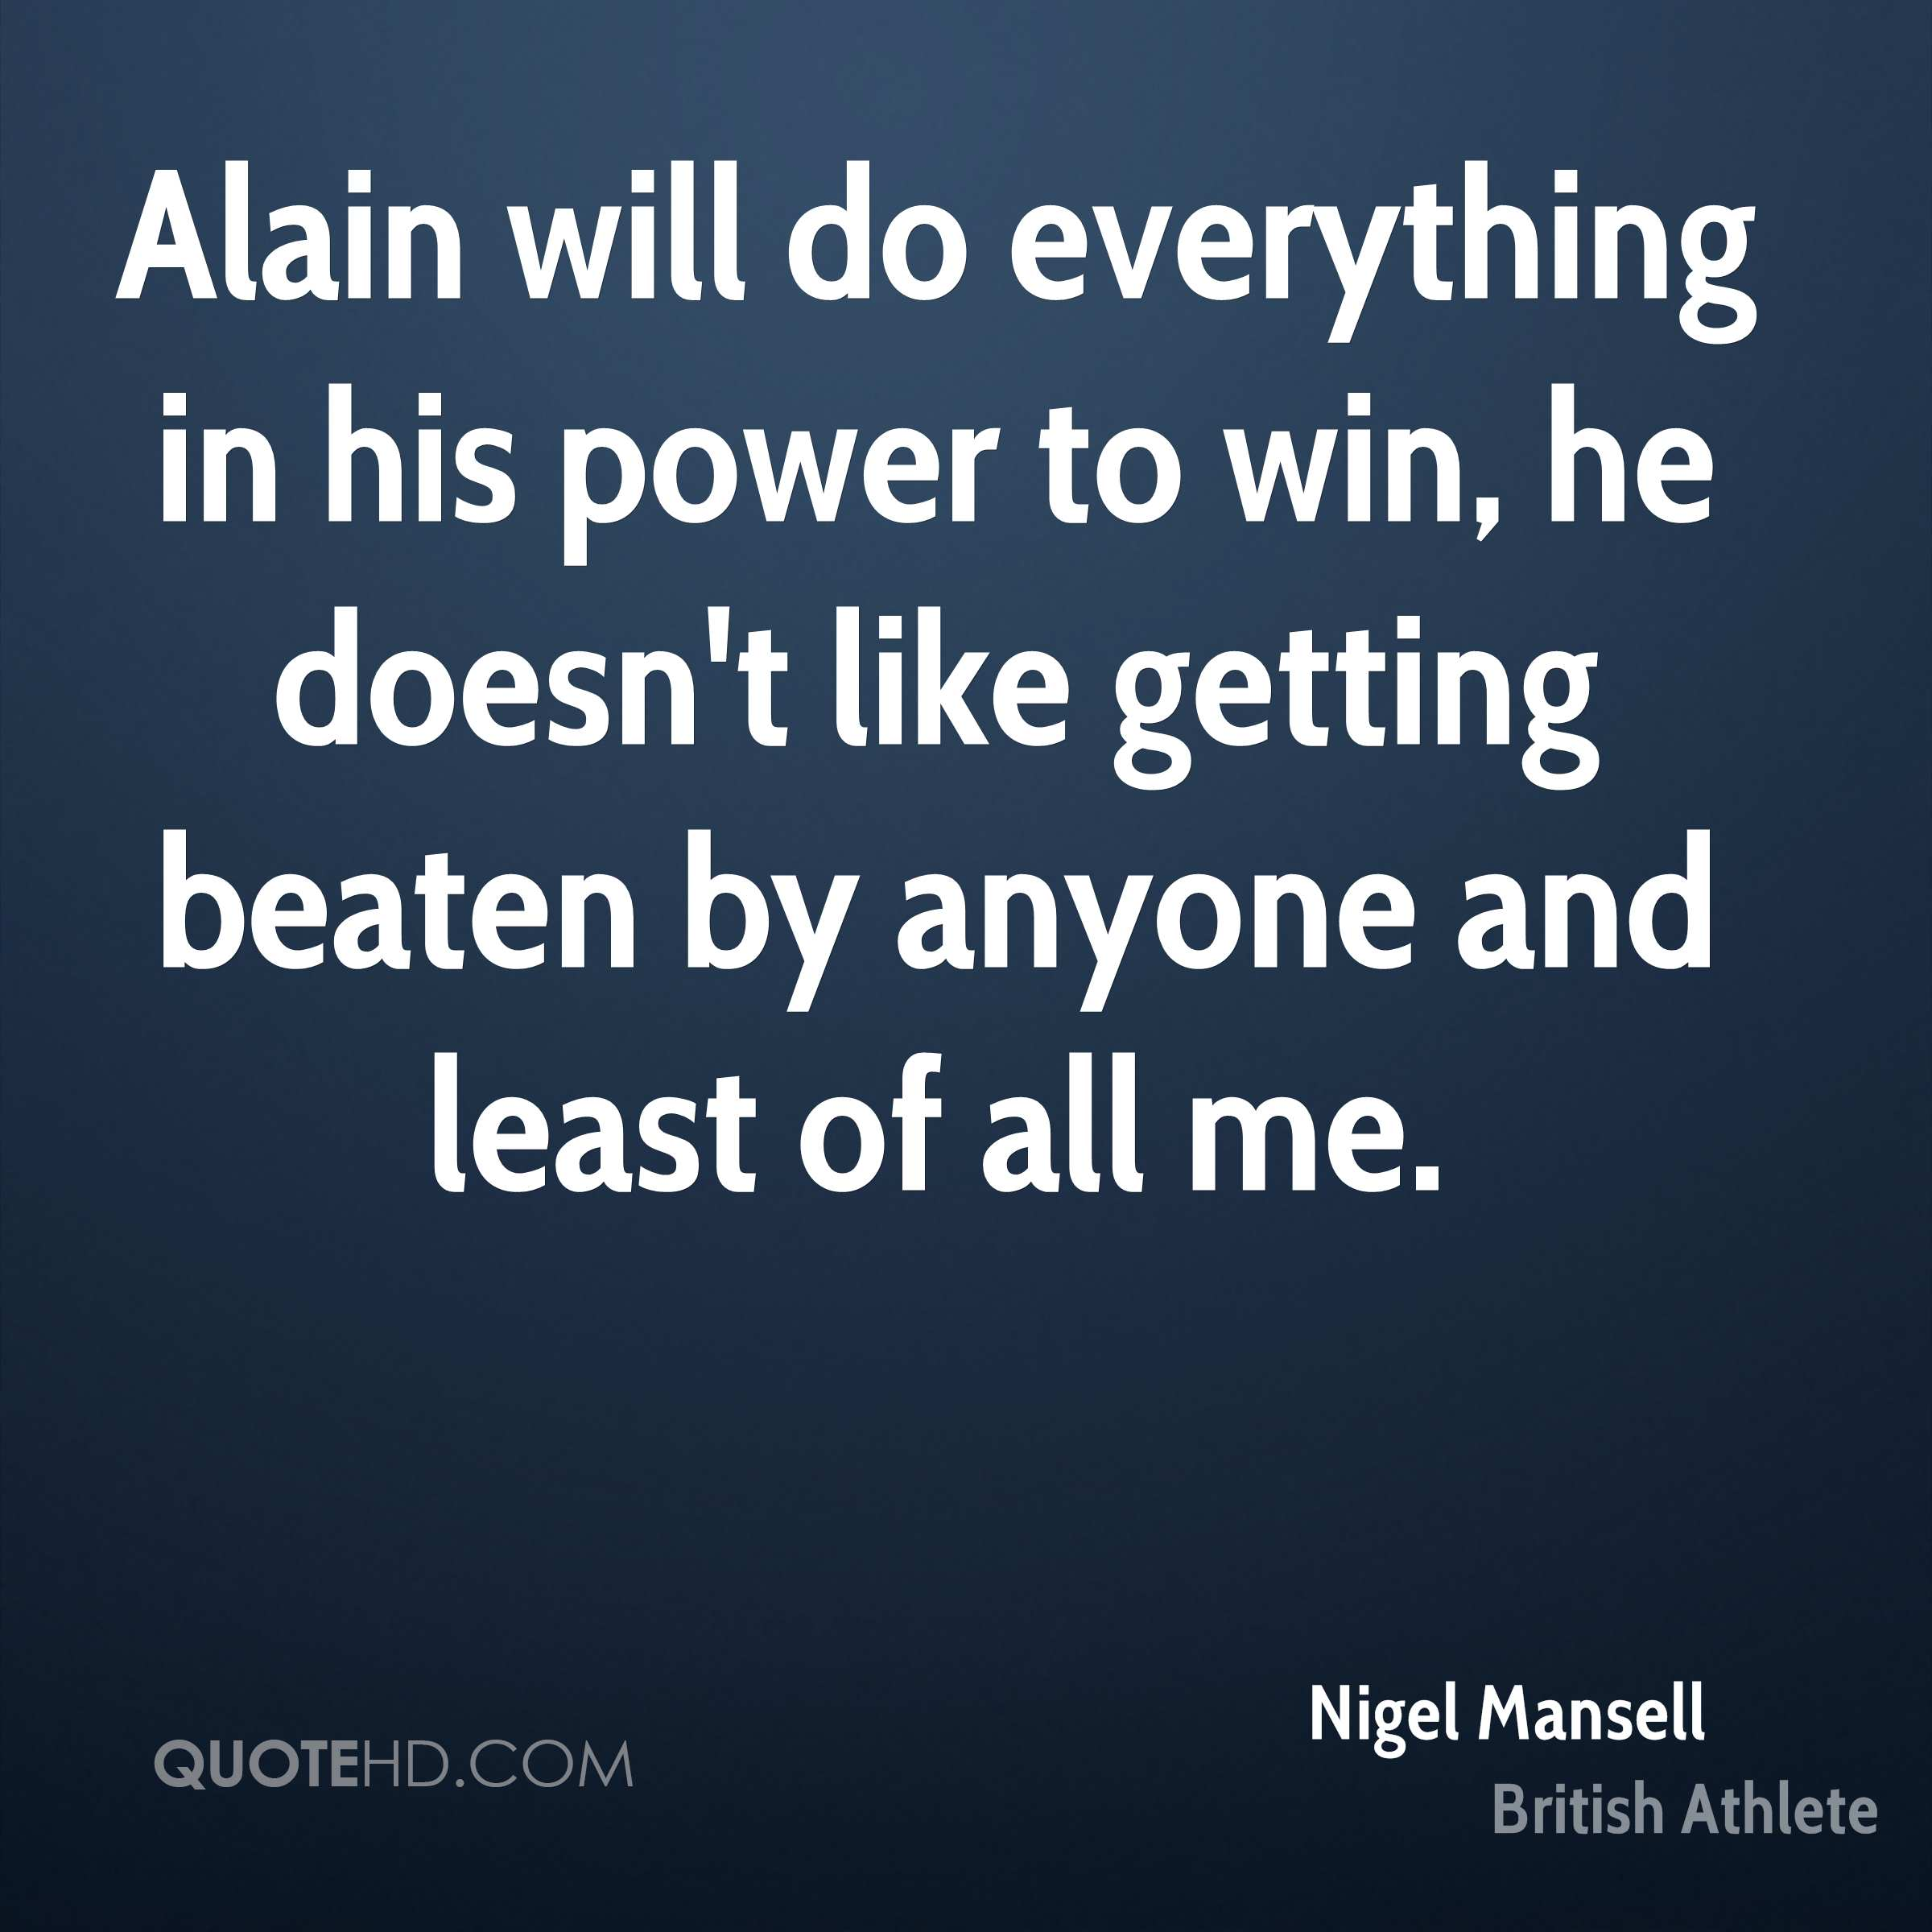 Alain will do everything in his power to win, he doesn't like getting beaten by anyone and least of all me.